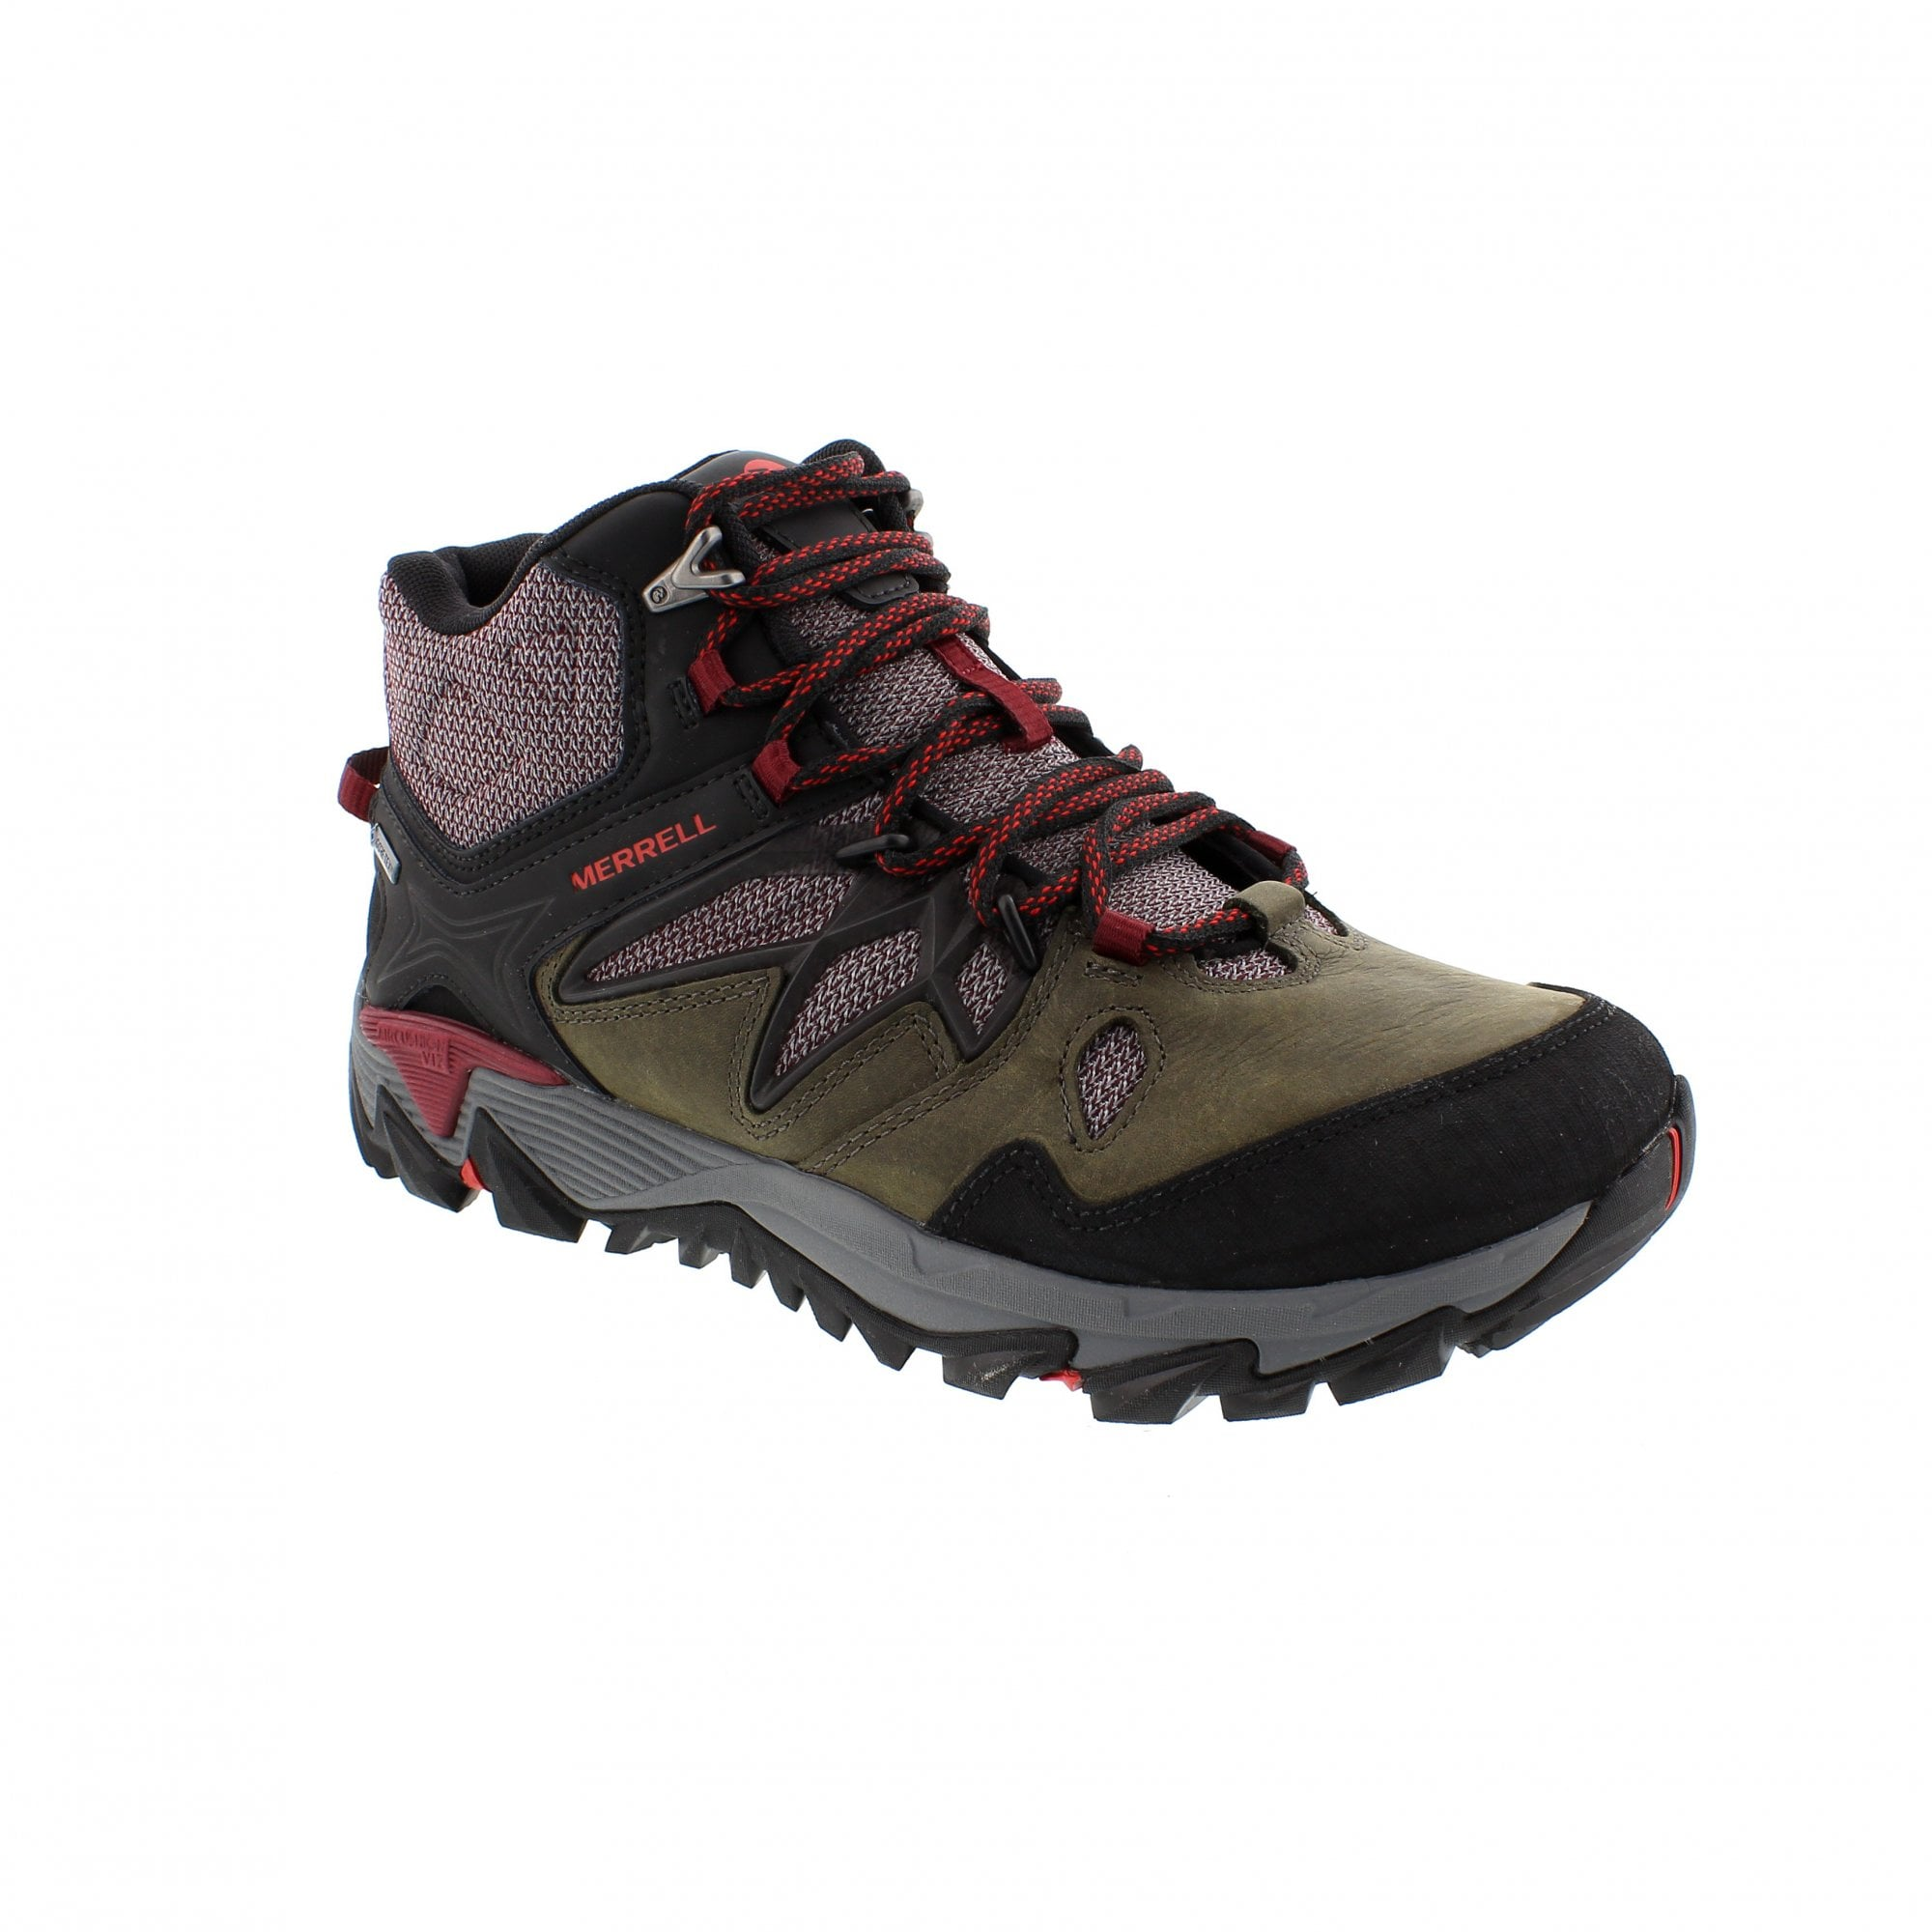 04f5762a3ff Merrell All Out Blaze 2 Mid Gore-Tex J41052 Womens Walking Boots ...